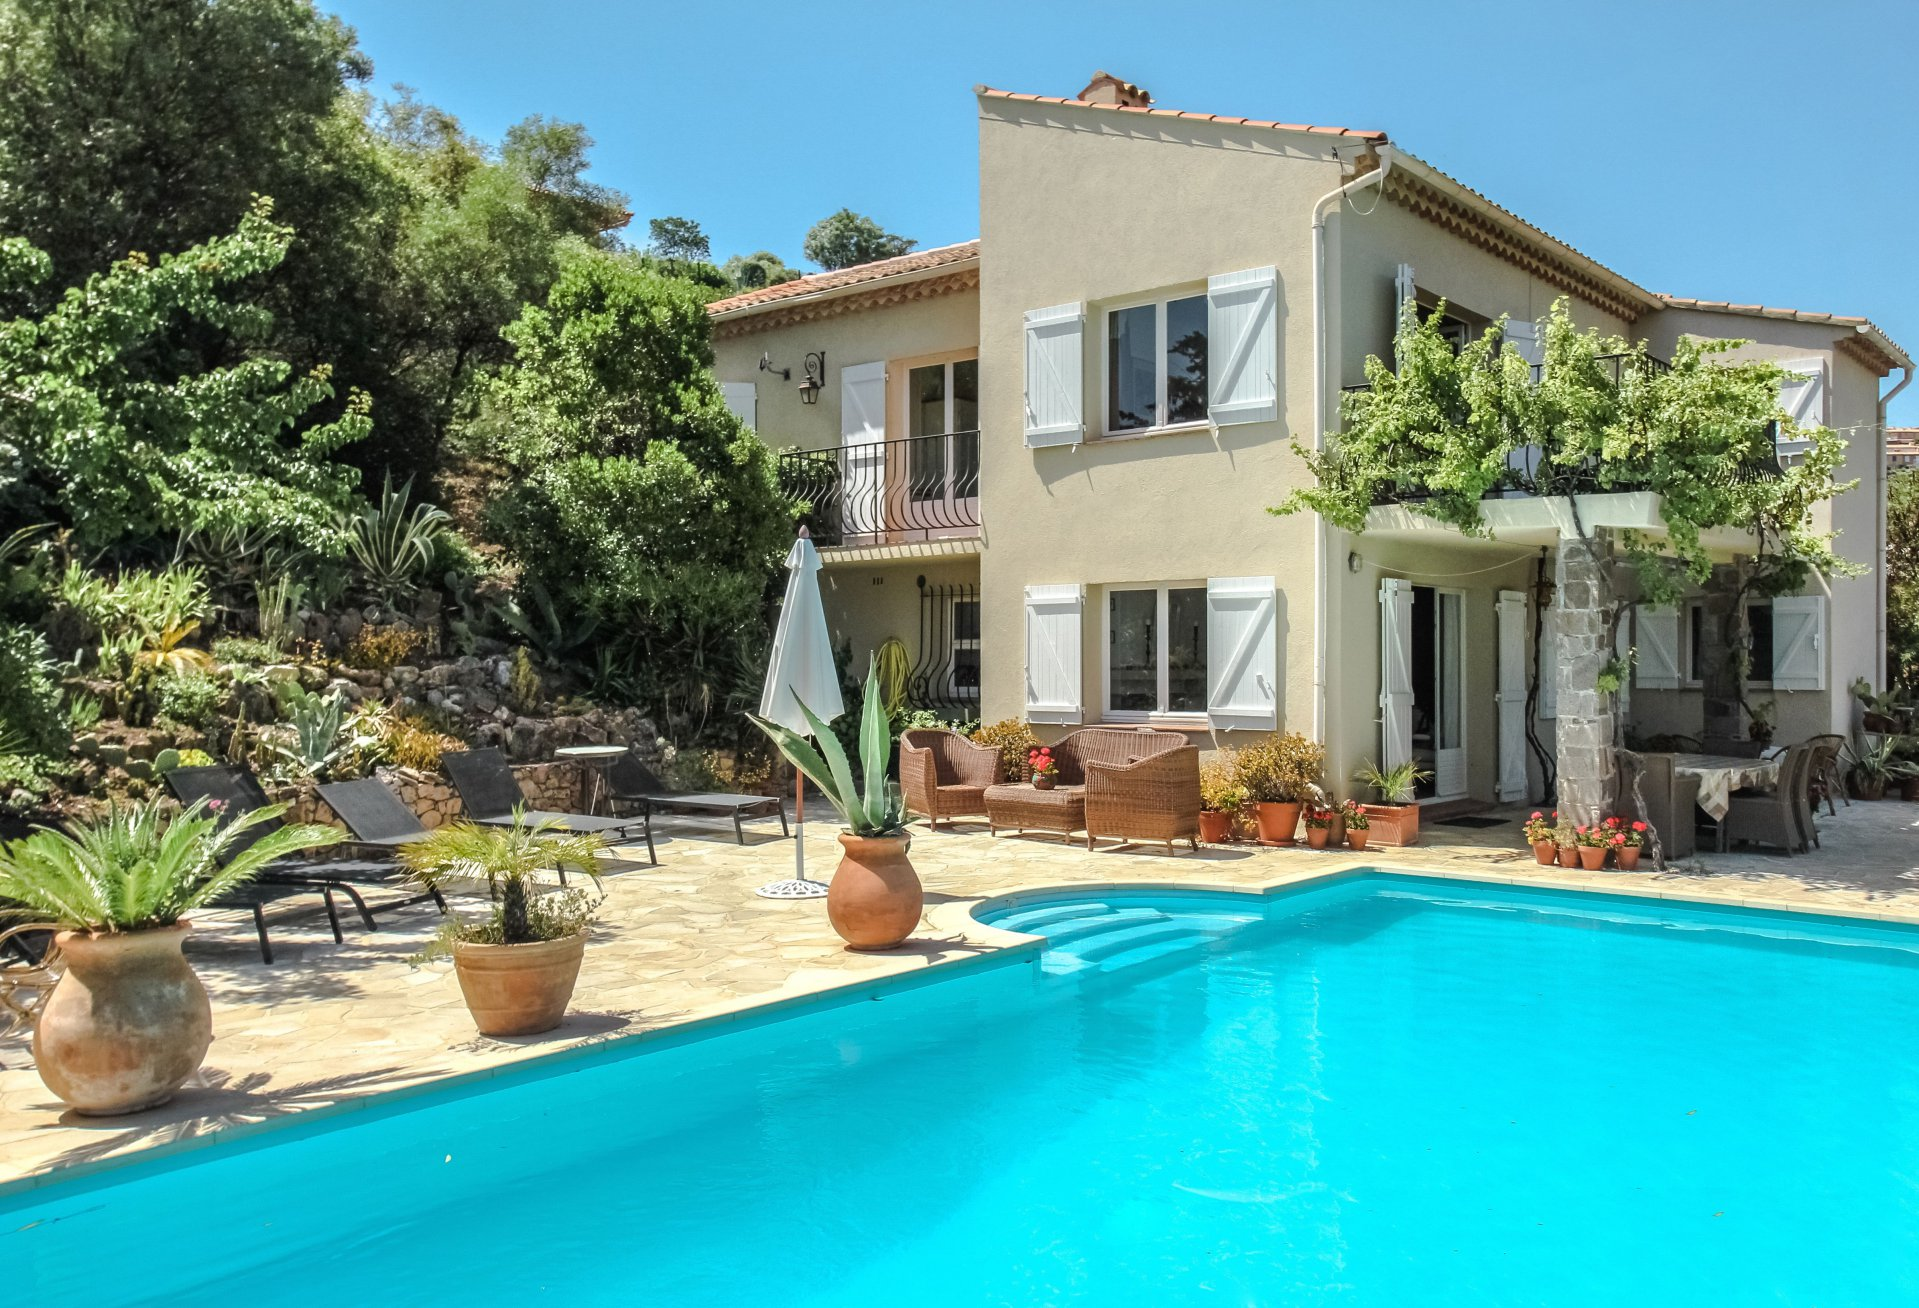 Villa with 4 bedrooms, pool and sea view in Les Issambres